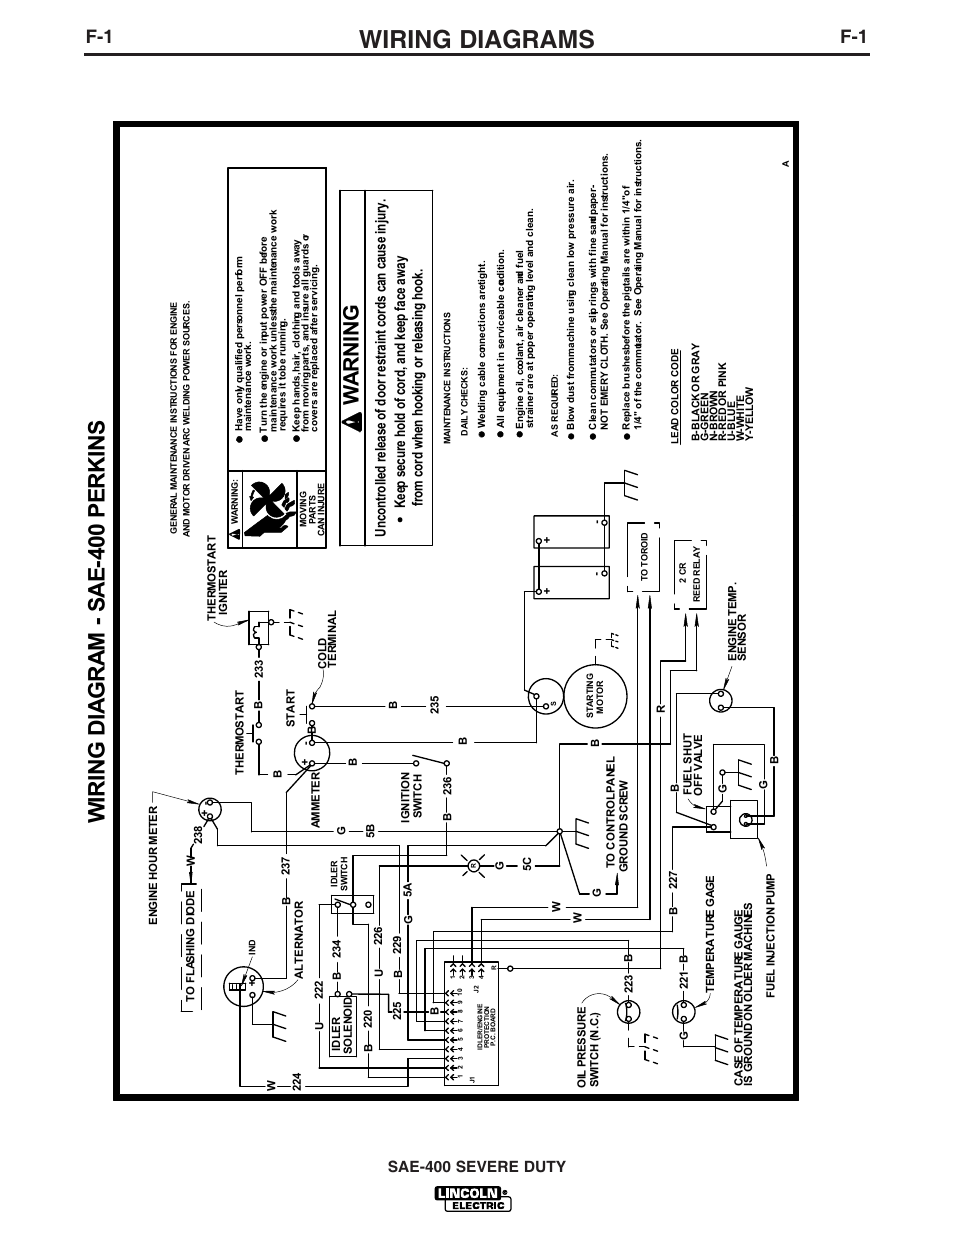 Lincoln Sae 400 Wiring Diagram Schematic Diagrams Vantage Free Download 300 Diesel Welder